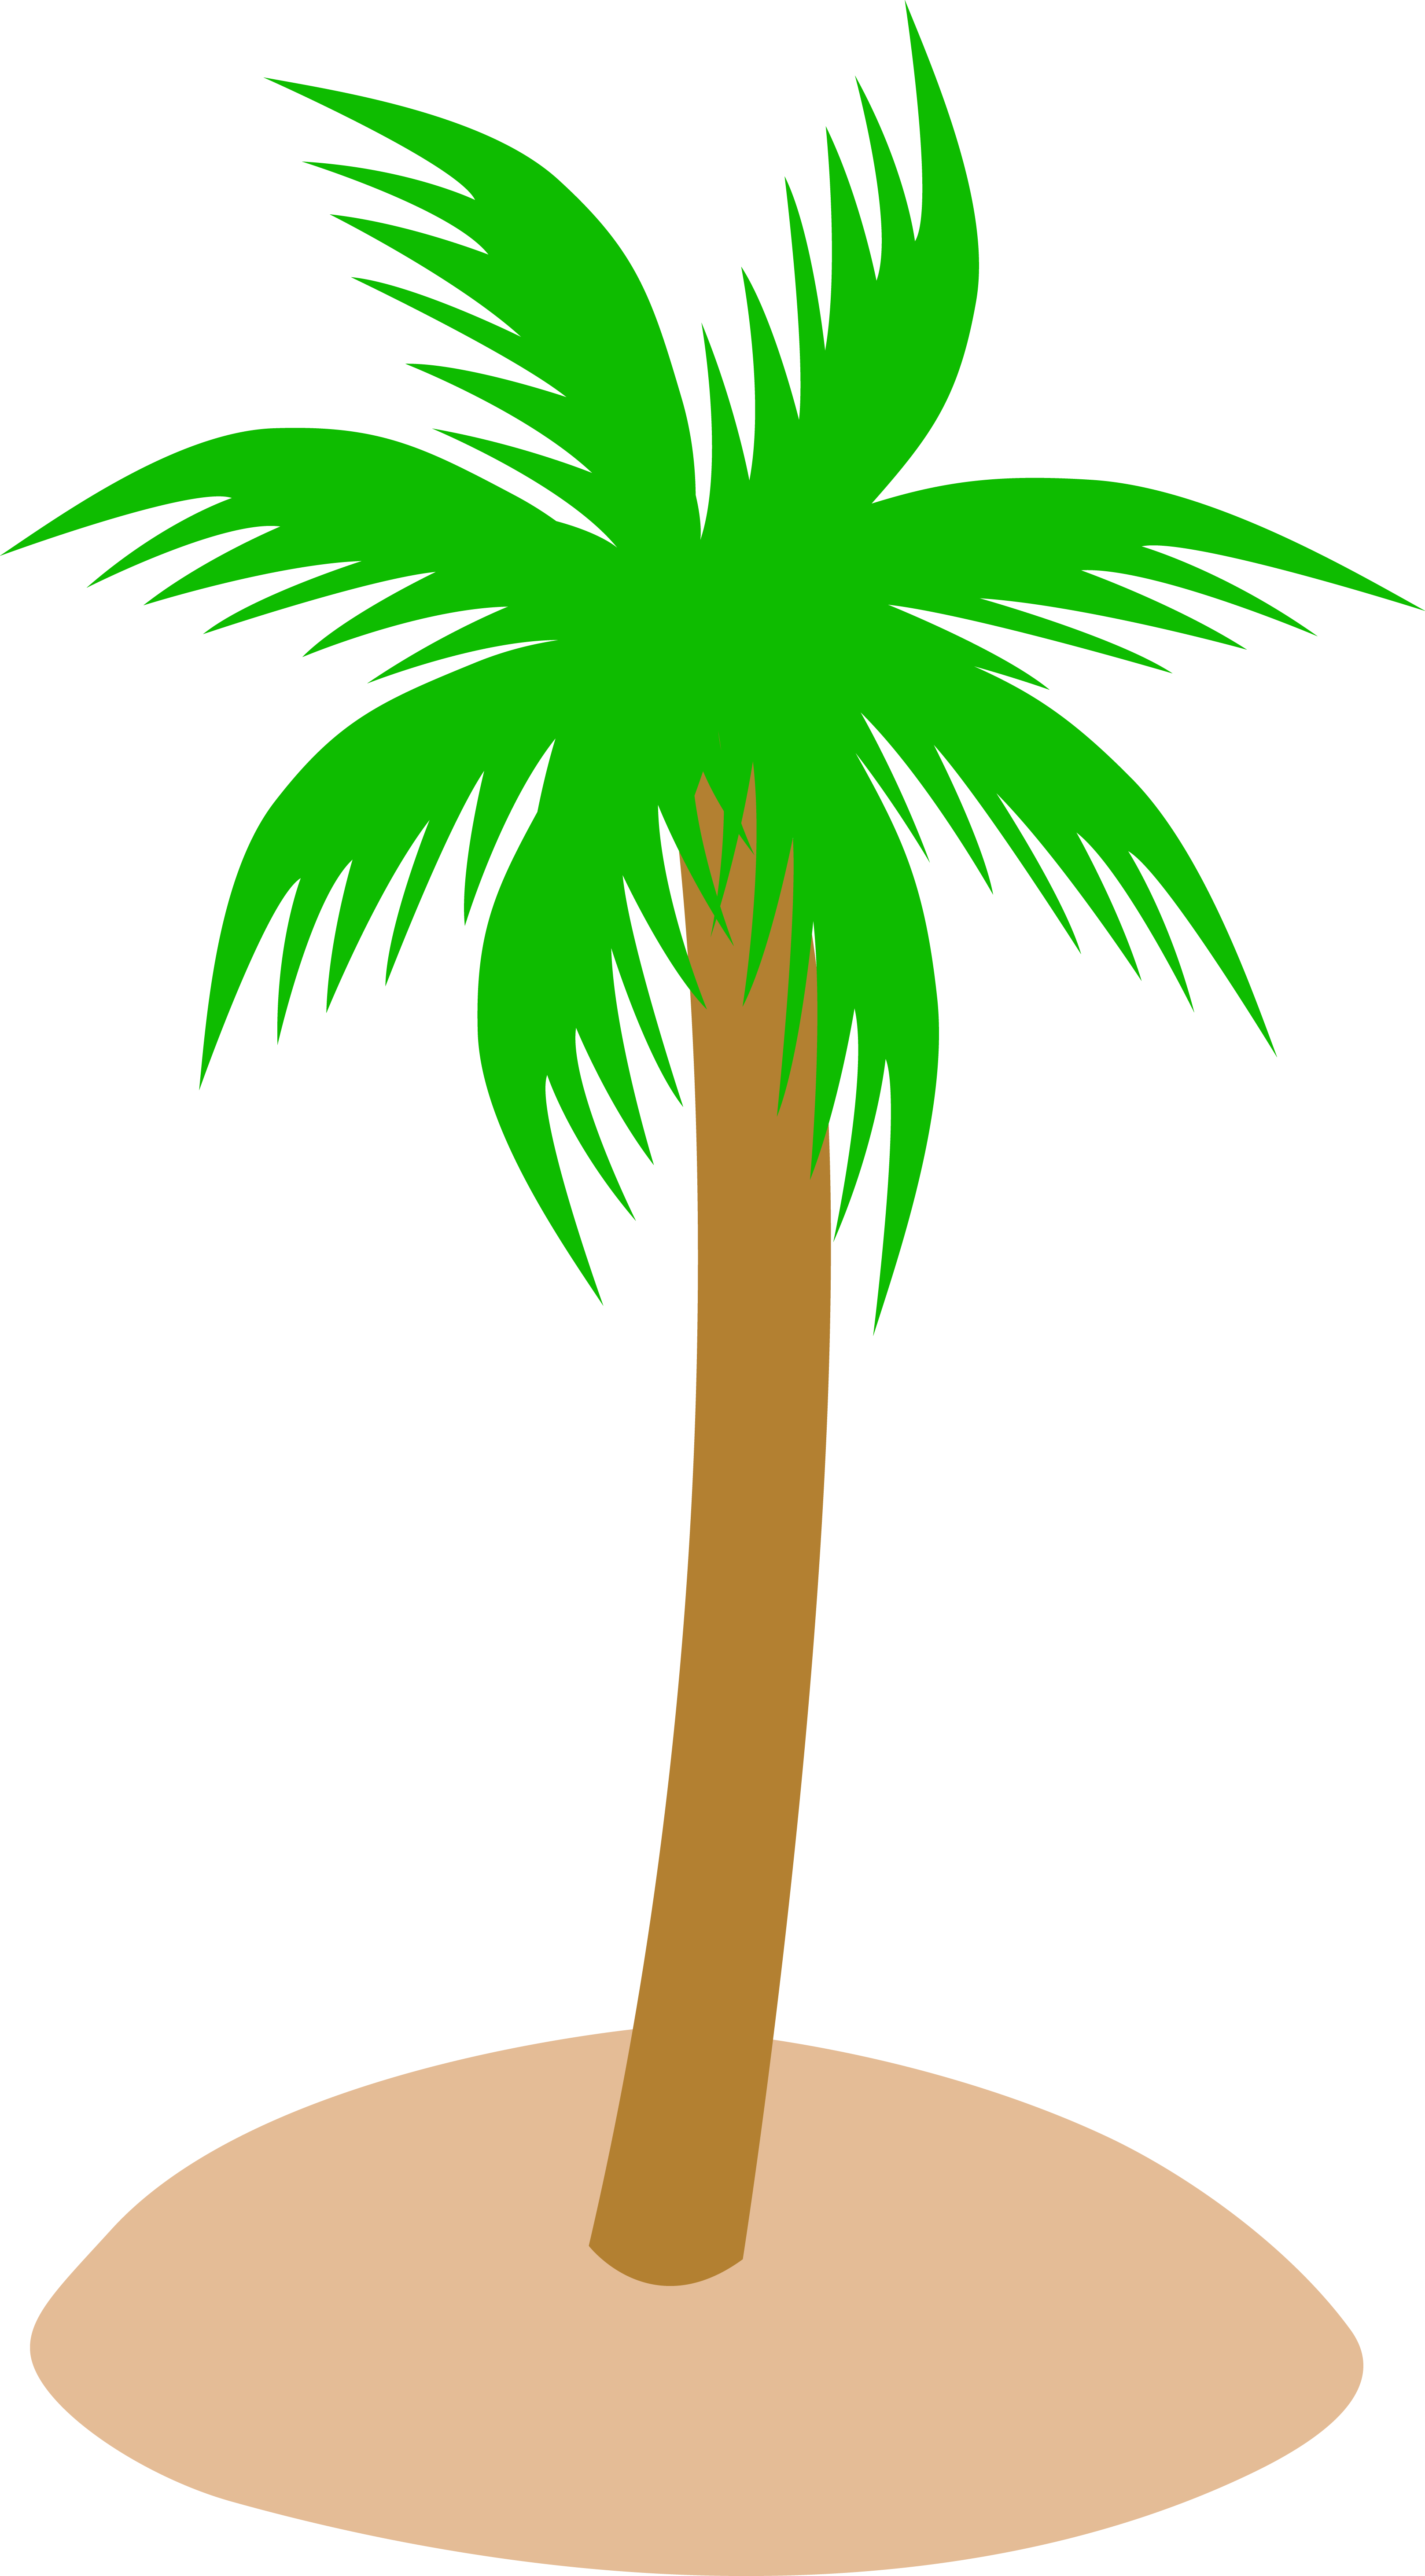 Black tropical island clipart png. Collection of transparent